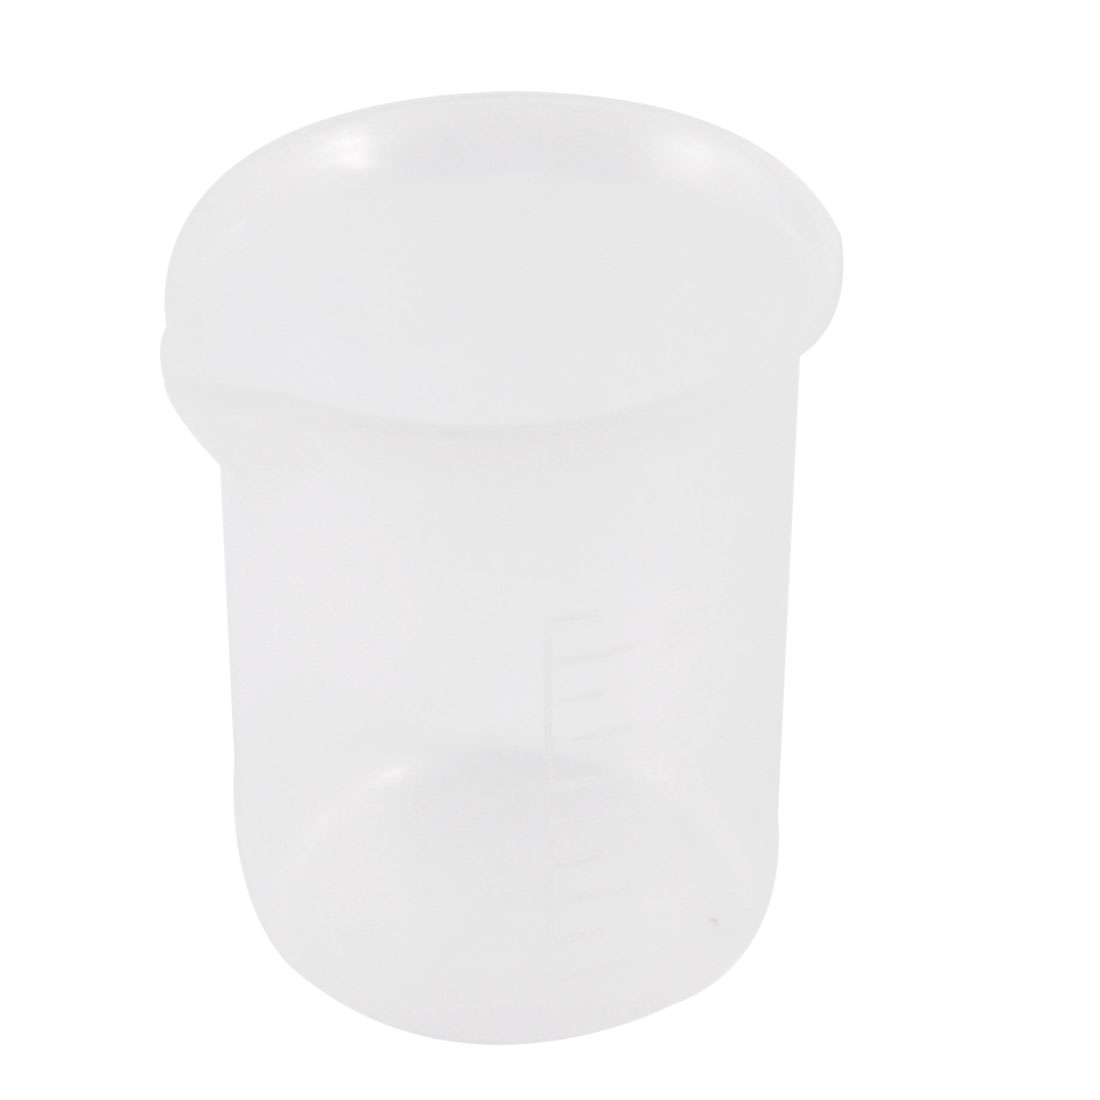 Laboratory Clear White Plastic Water Liquid Measuring Cup Beaker 50mL